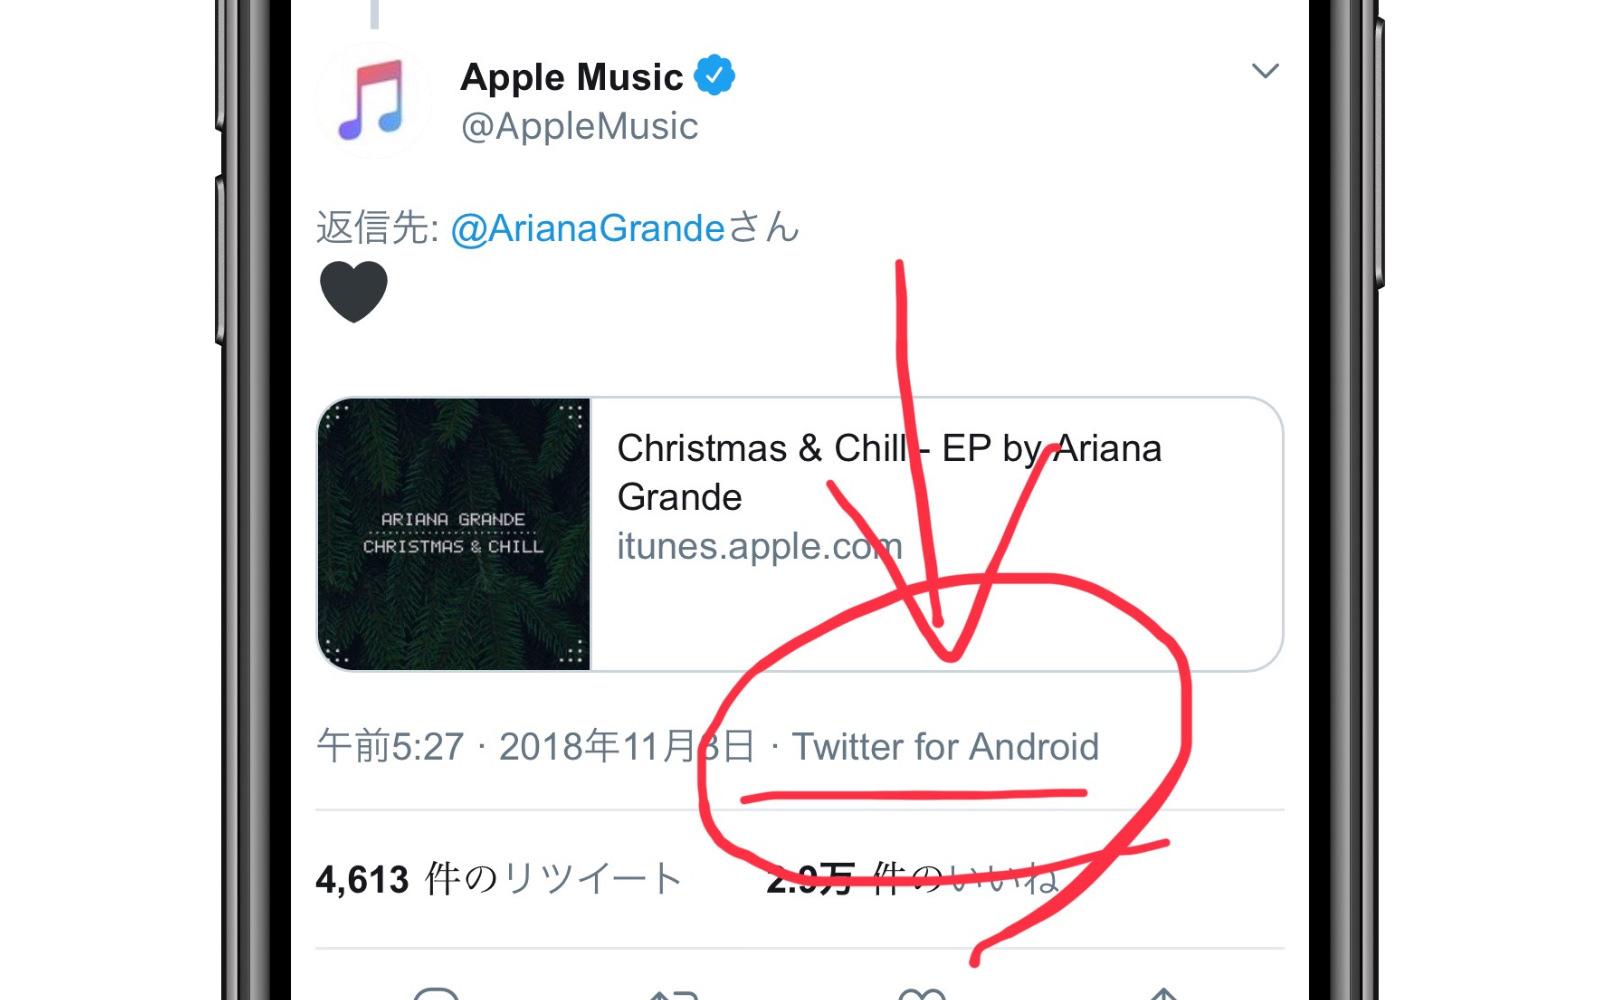 Apple Music Twitter for Android